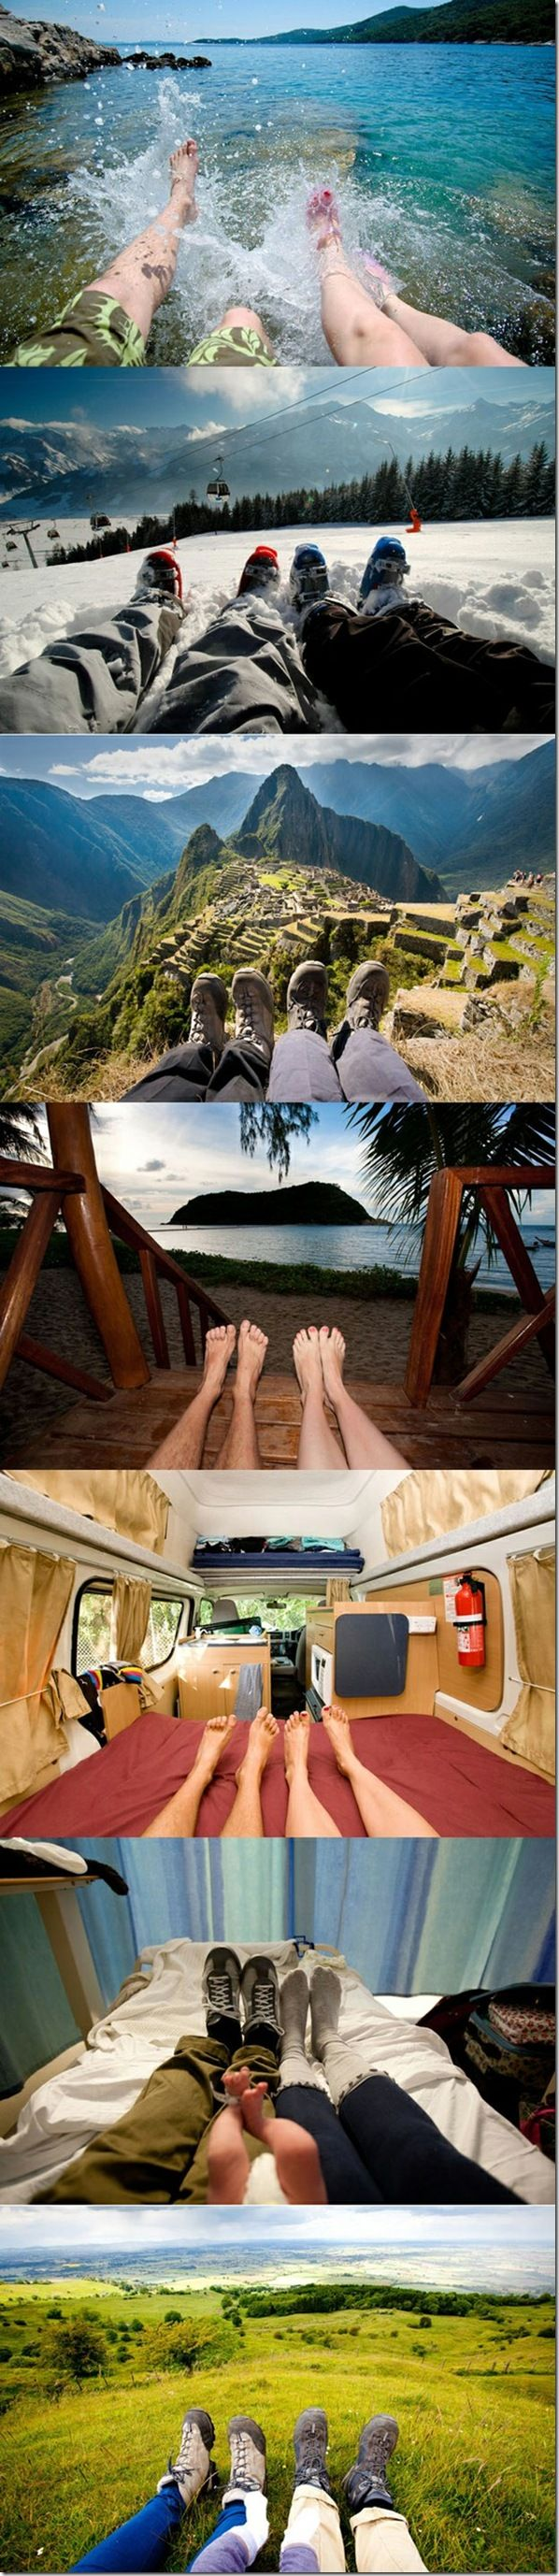 Awesome idea to take pictures of your feet everywhere you travel.Vacations Pictures, Photos Ideas, Photo Ideas, Take Pictures, Travel Photos, Baby Feet, Cute Ideas, Families Vacations, Cool Ideas